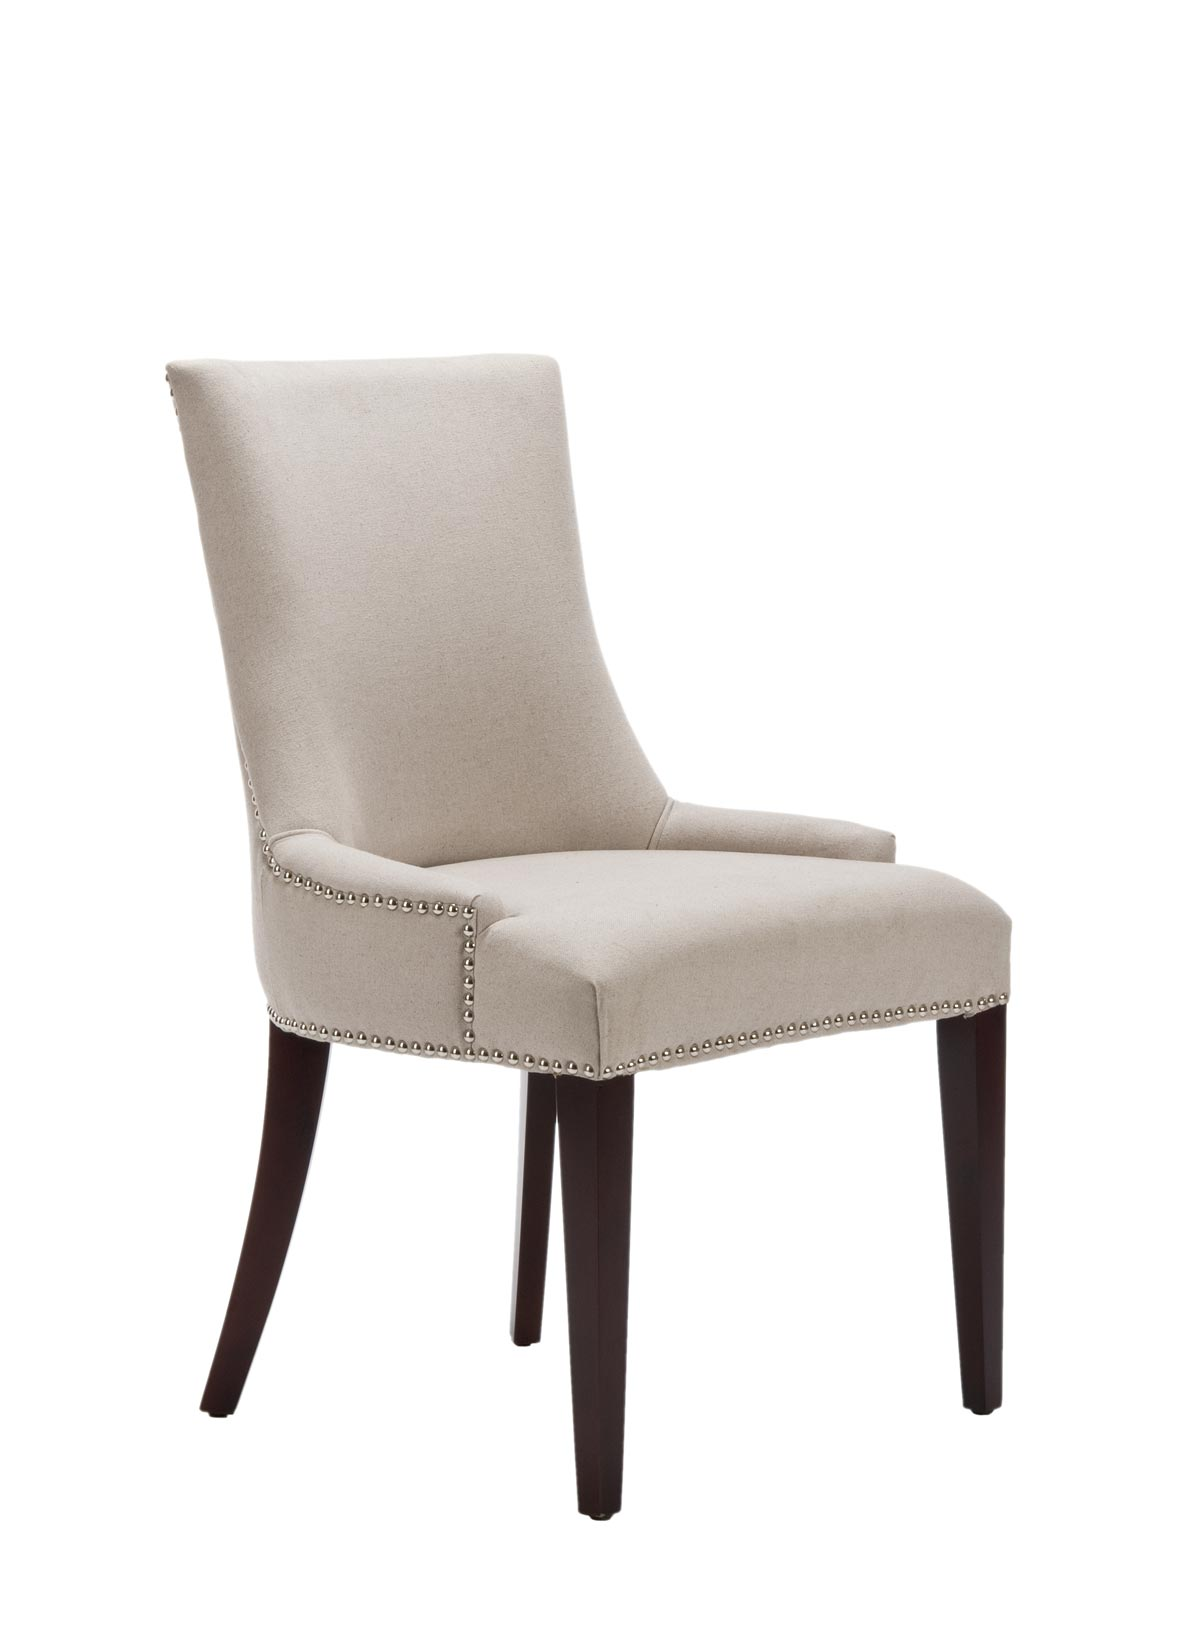 safavieh dining chairs hanging bubble chair uk mcr4502a becca taupe 621 00